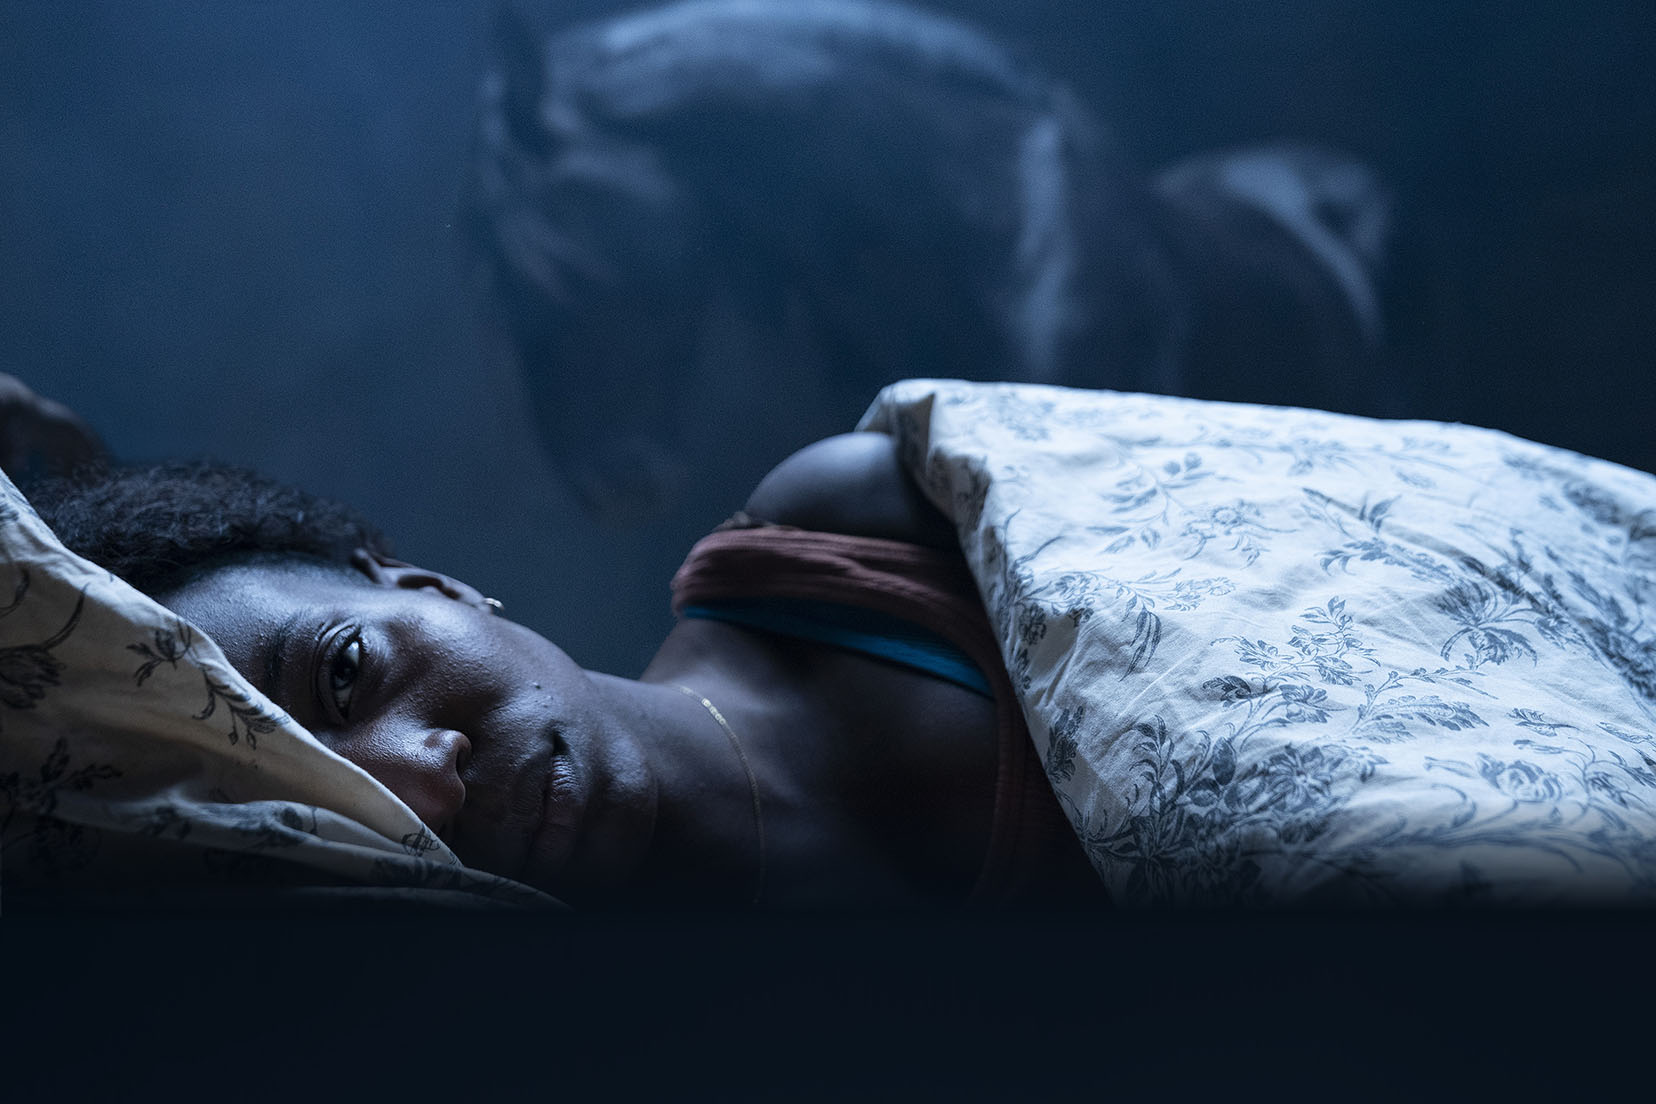 Actress Tamara Lawrence is laying in bed, facing the camera, and looking nervous in horror film, Kindred.